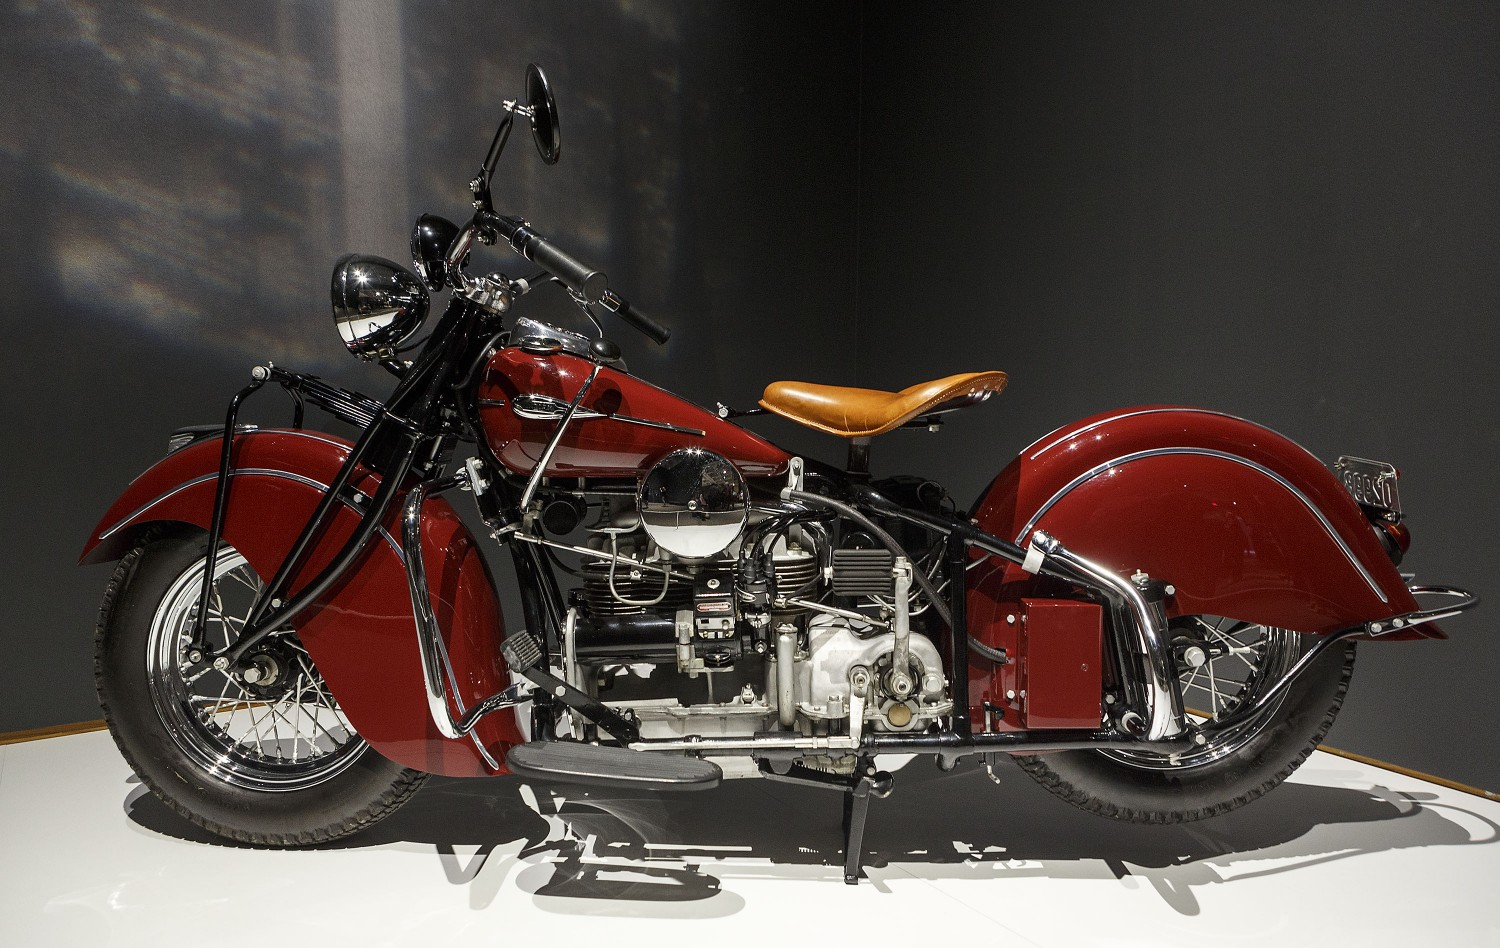 motorcycle gallery used cars  Photo Gallery: The Cars of Dreams | Cary Magazine